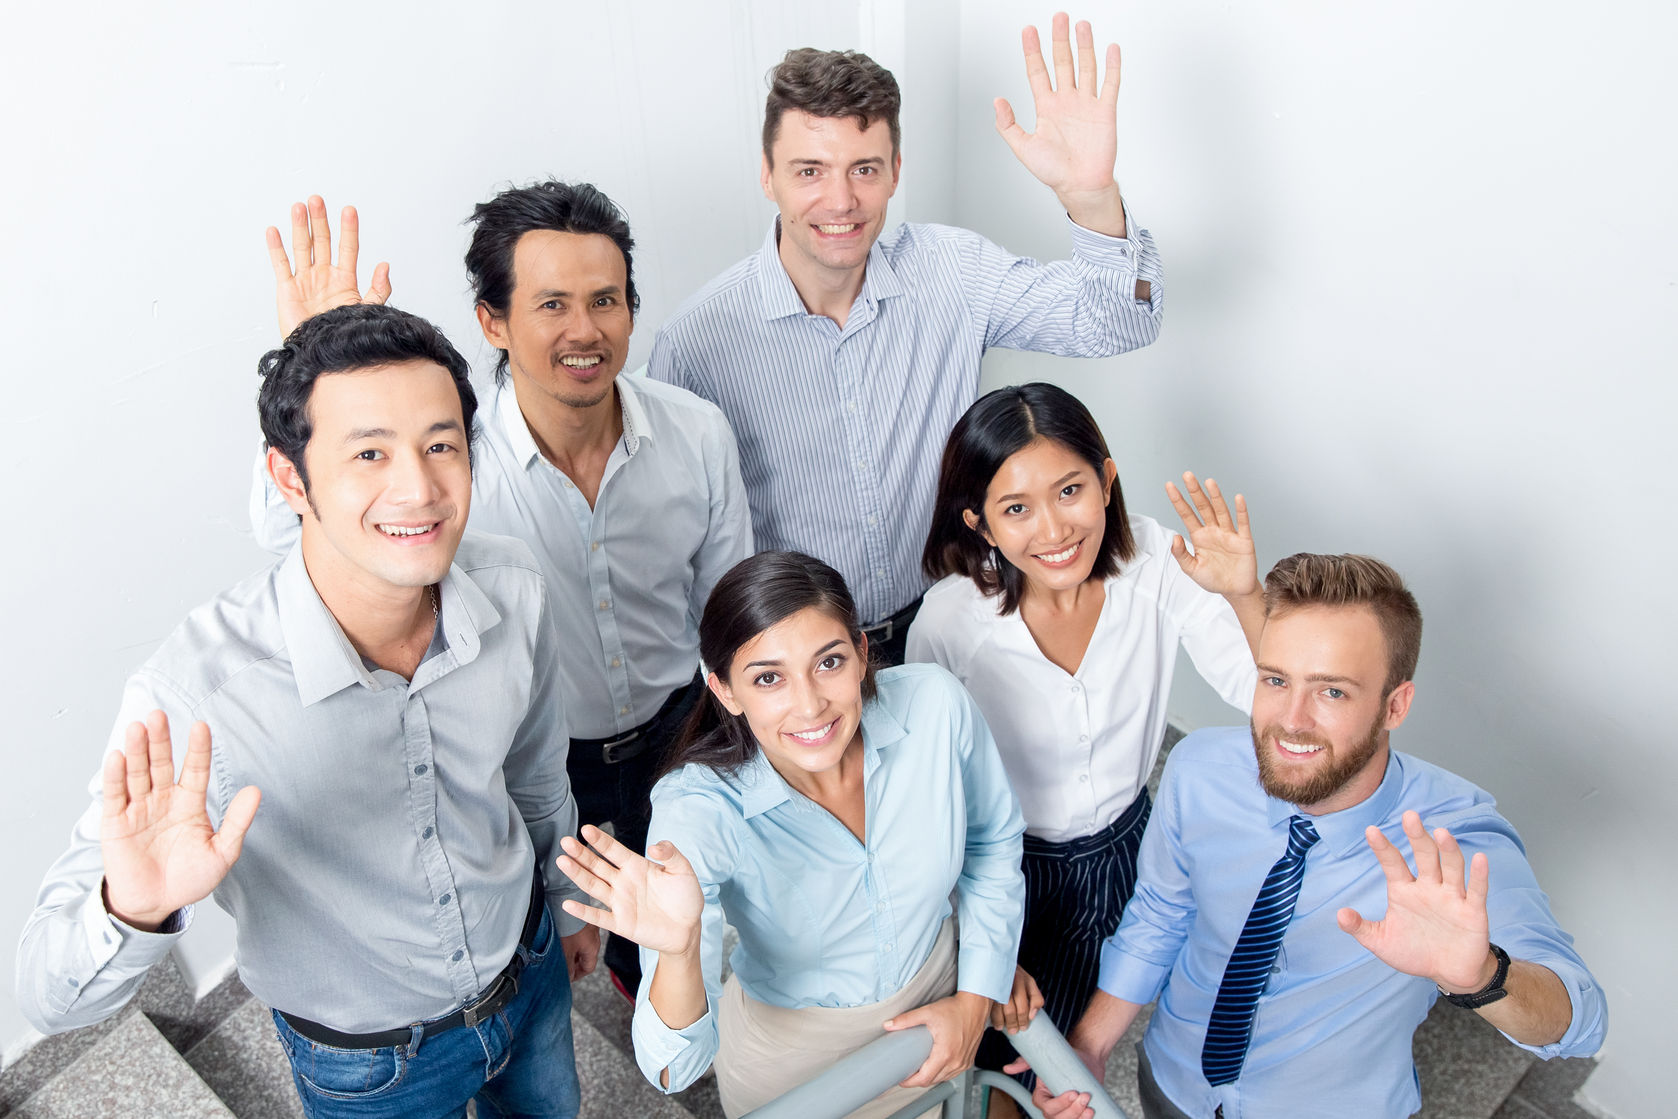 2 Basic Japanese Greetings To Help Build Relationships At Work